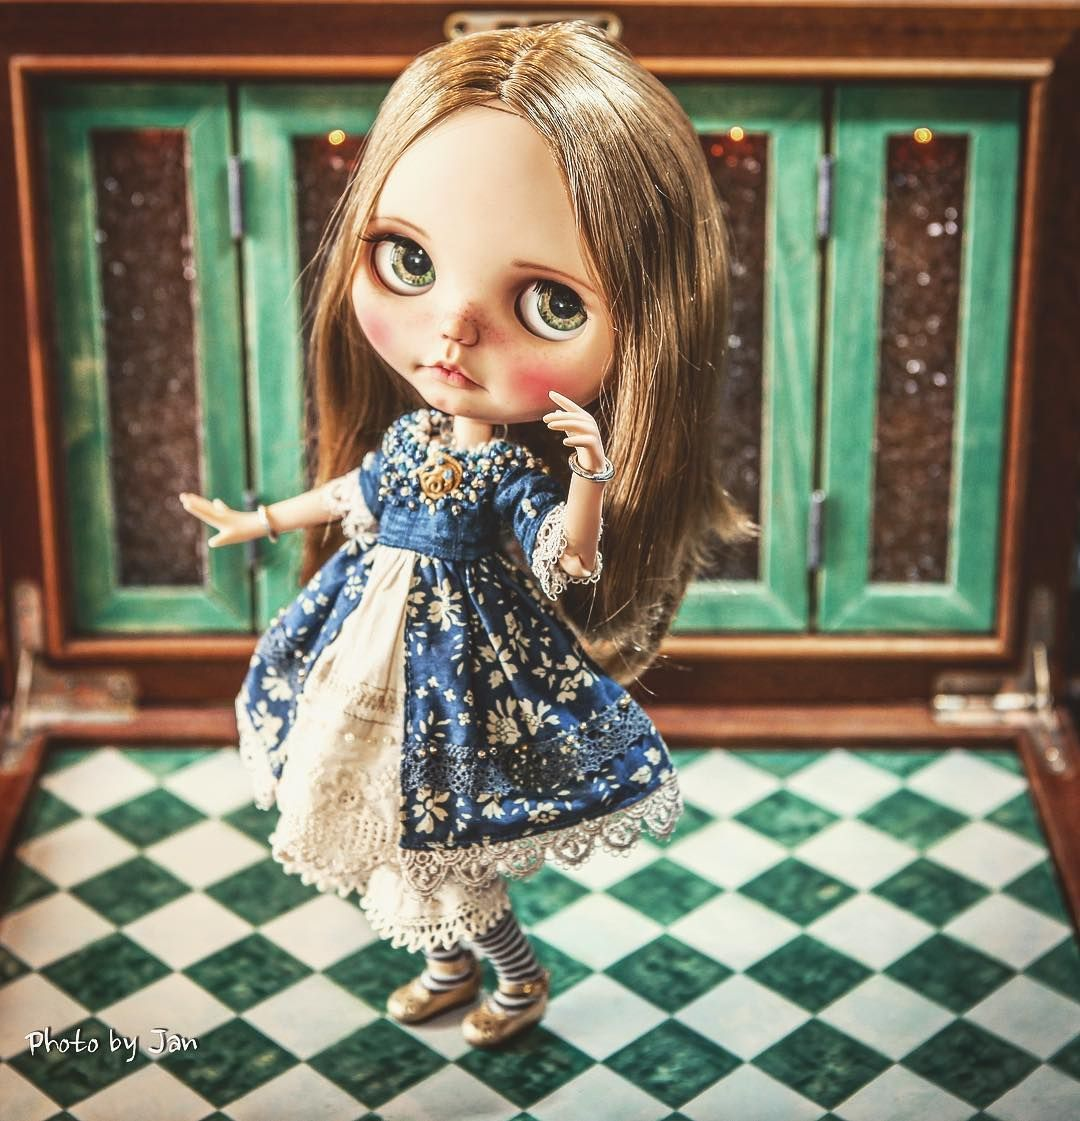 Shall we dance ✨✨ #jodiedolls #Blythe #Magelie #Jansworks #vintage #dress #adorable #lovely #love